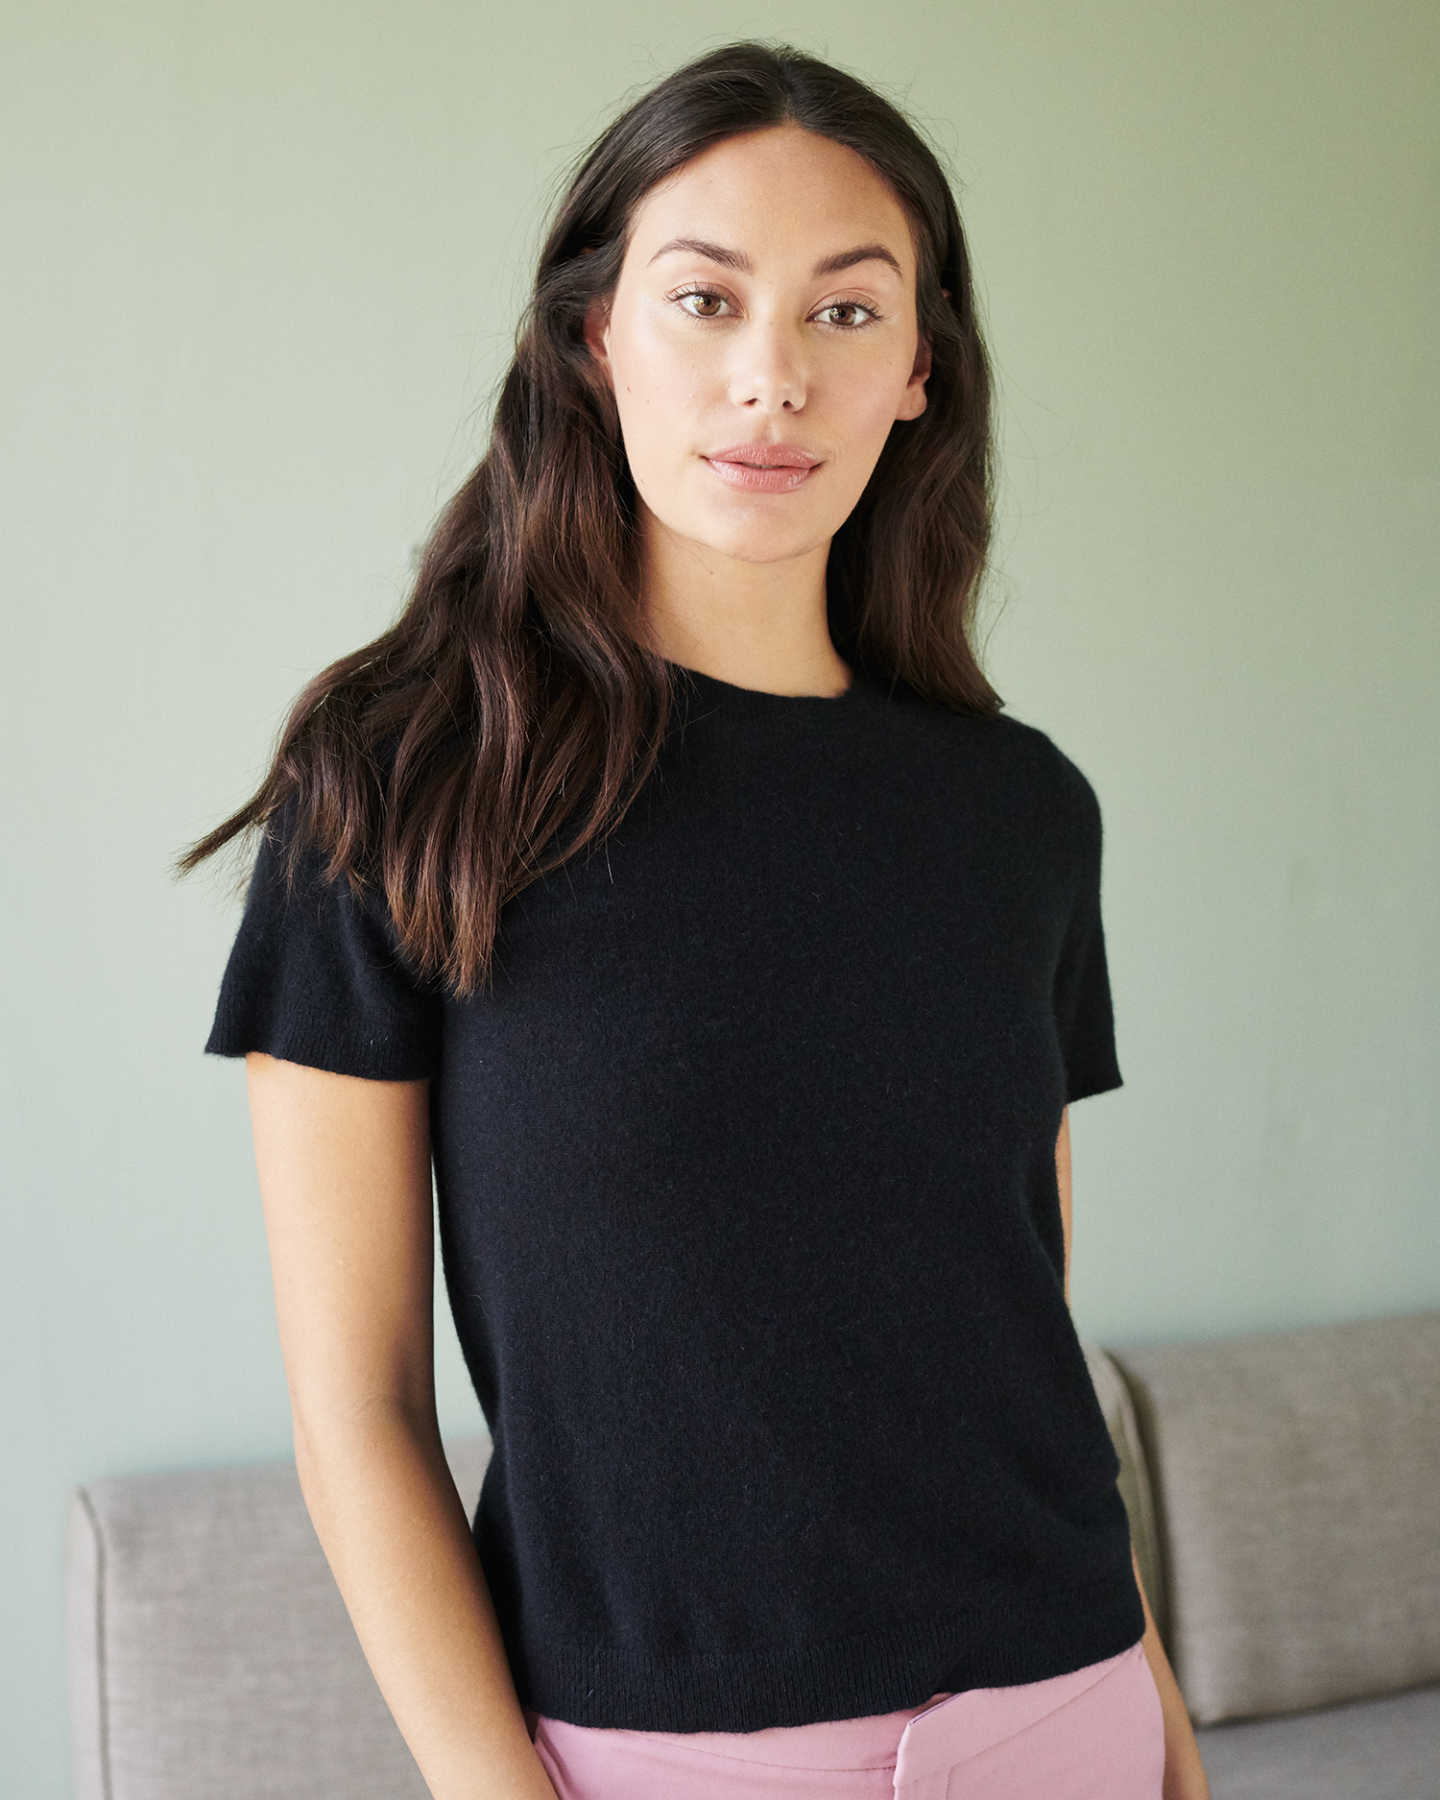 woman wearing black cashmere tee looking at the camera